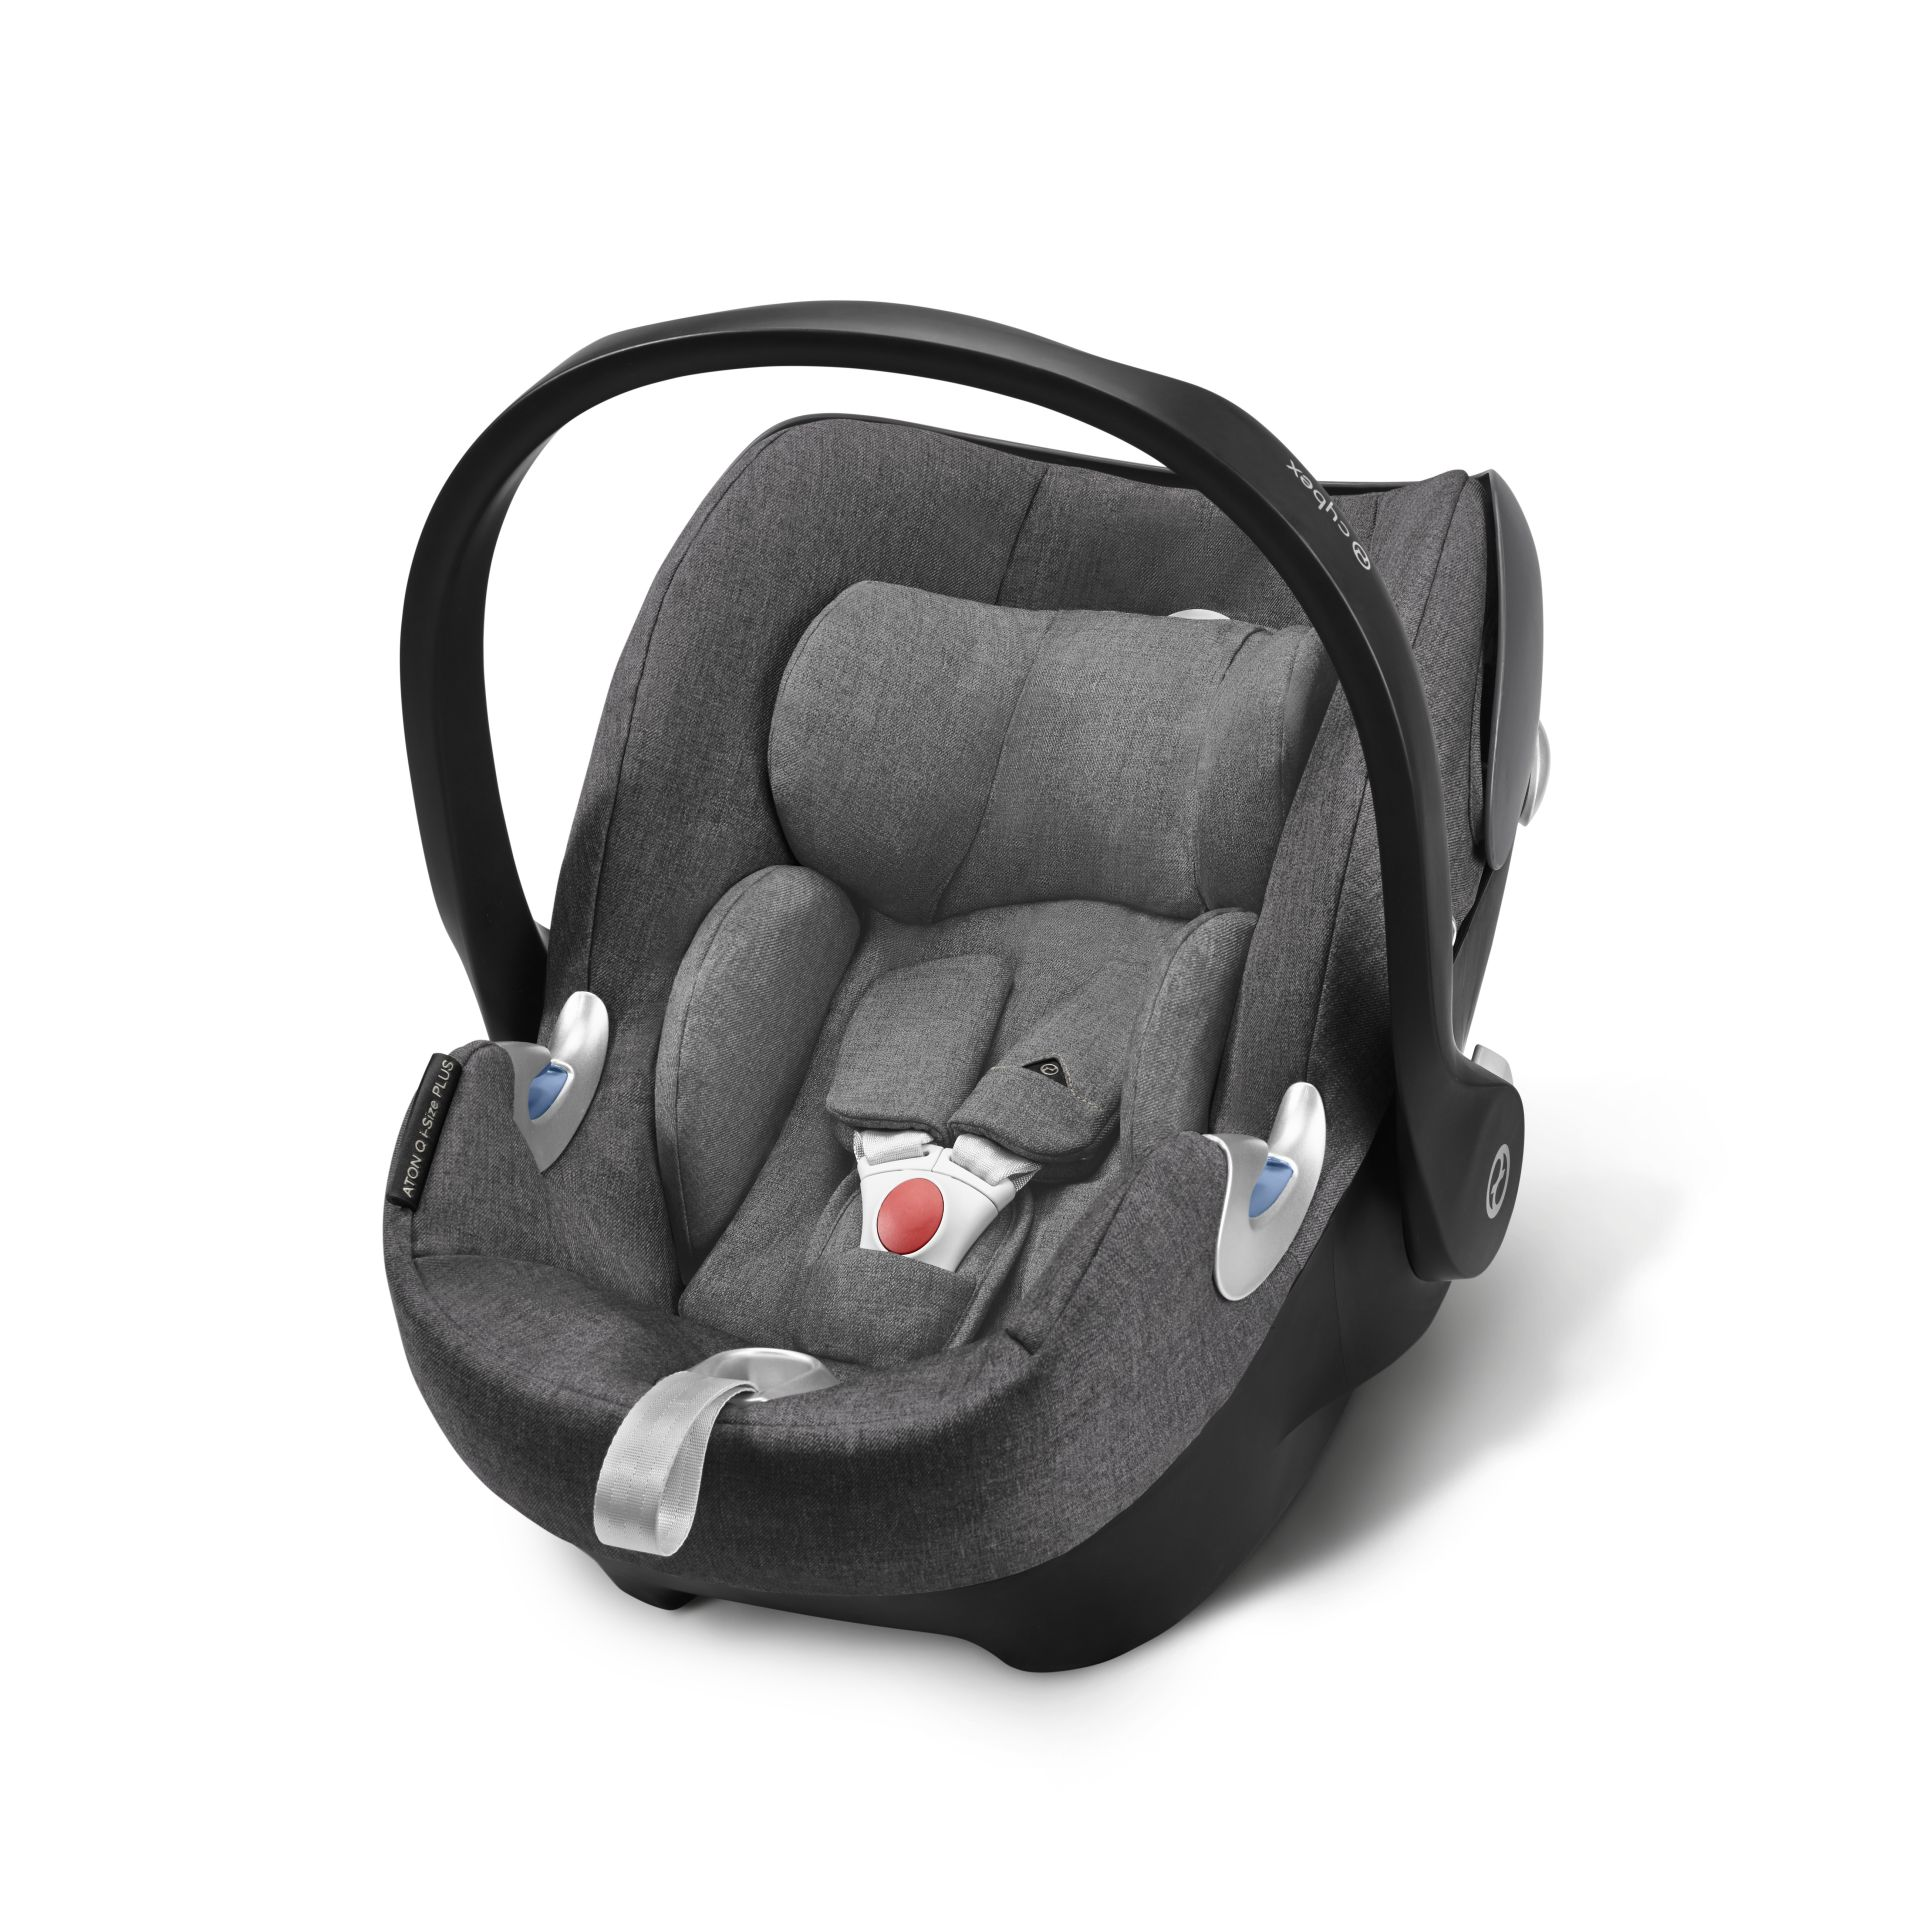 cybex platinum infant car seat aton q i size plus 2018 manhattan grey mid grey buy at. Black Bedroom Furniture Sets. Home Design Ideas